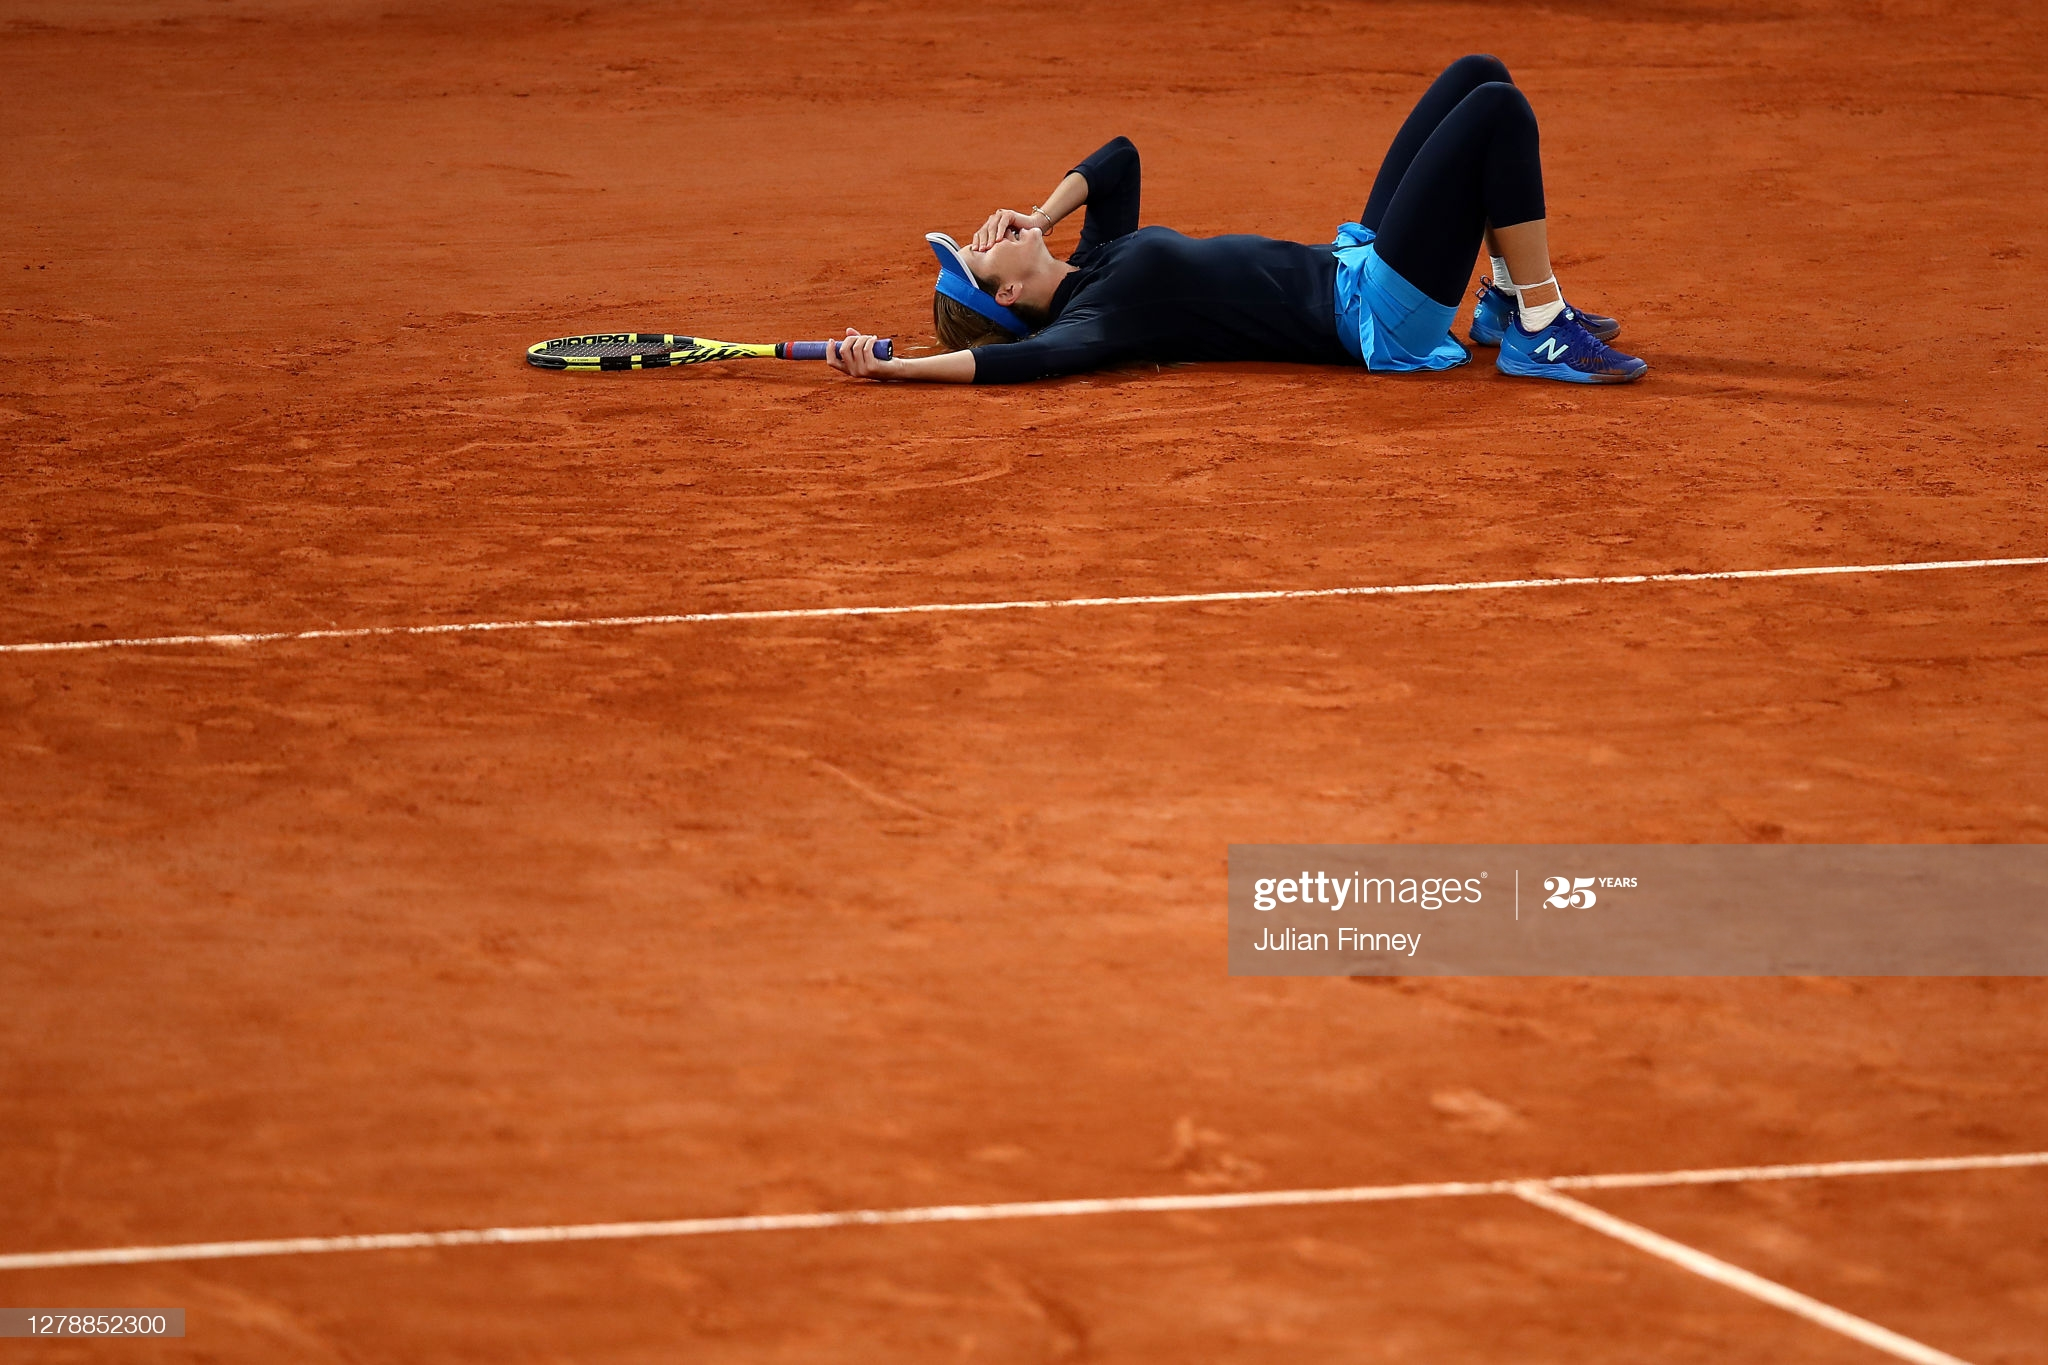 danielle collins day 10 french open 2020